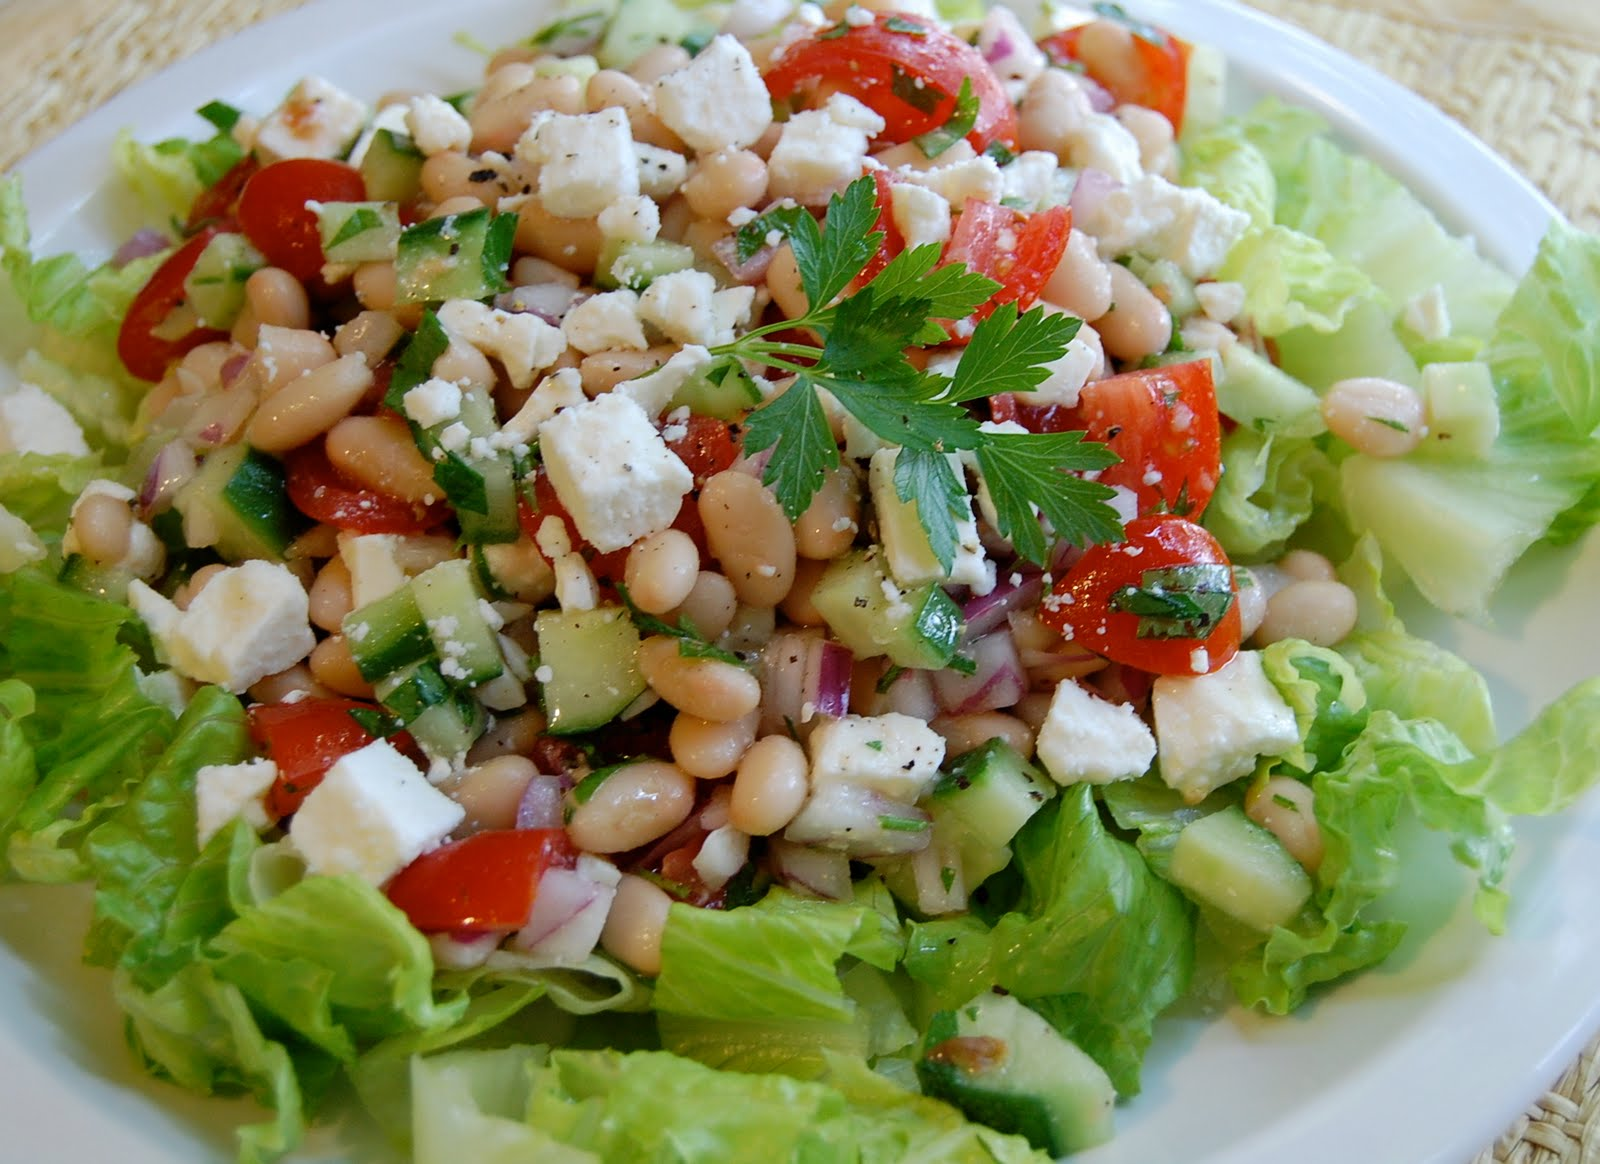 salad with beans and feta.JPG